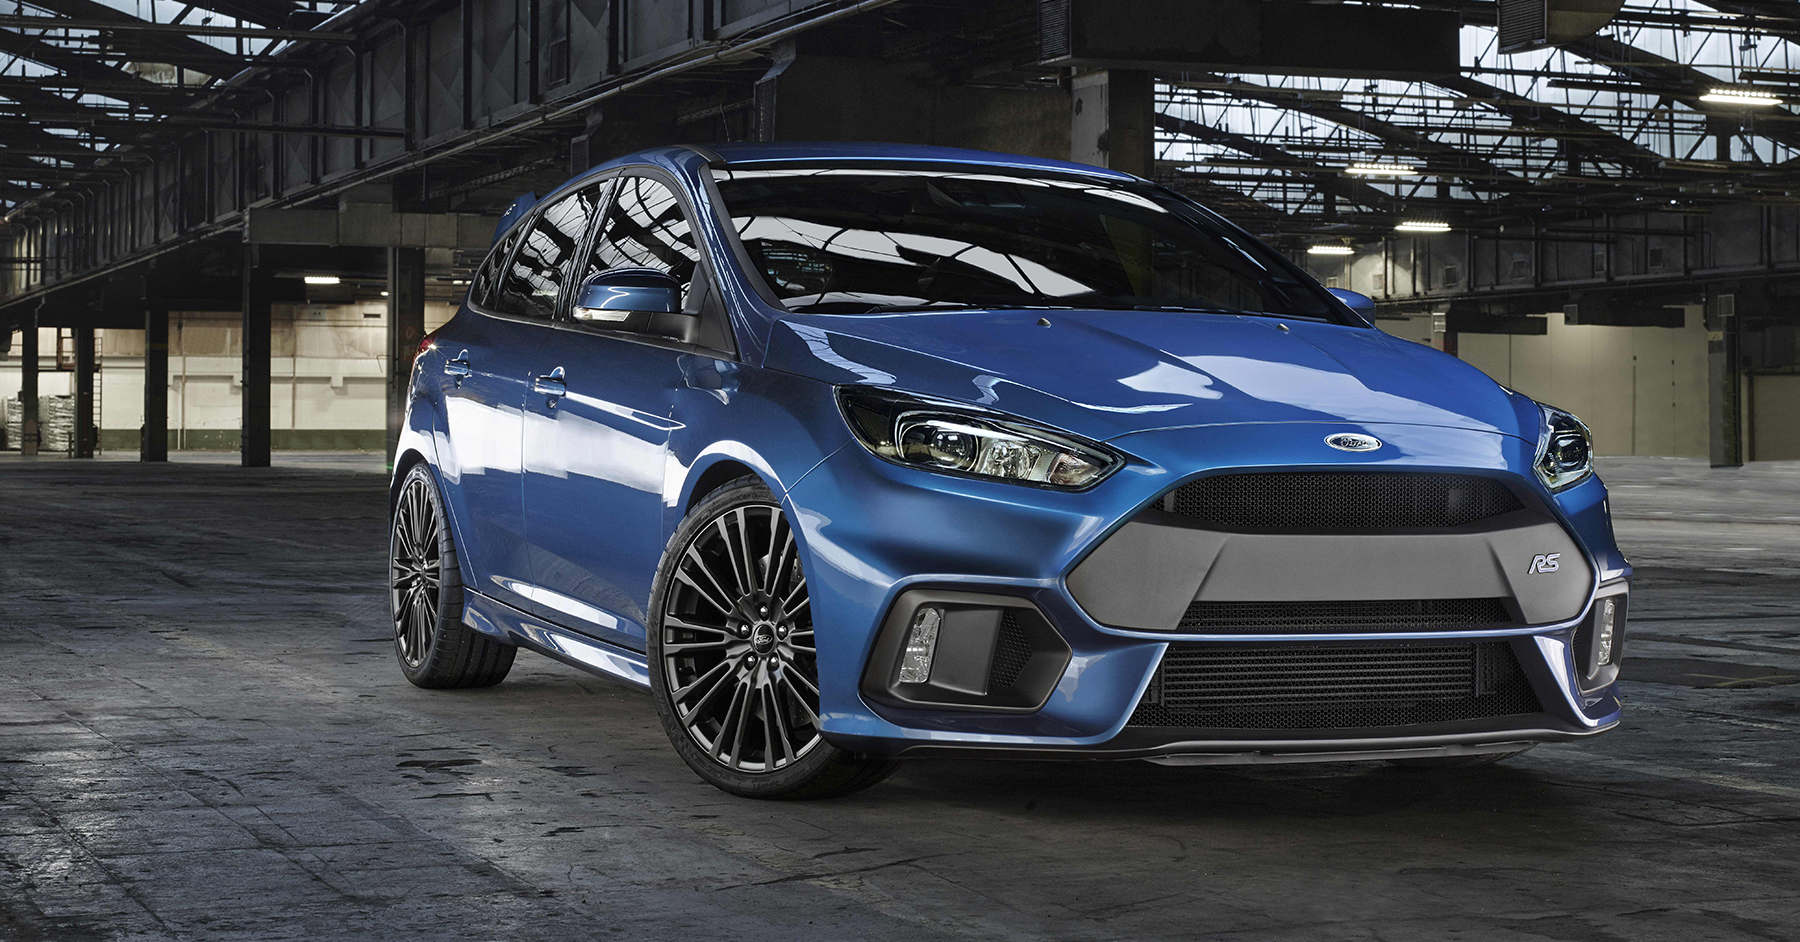 Ford Focus Rs Colours Guide And Prices Carwow